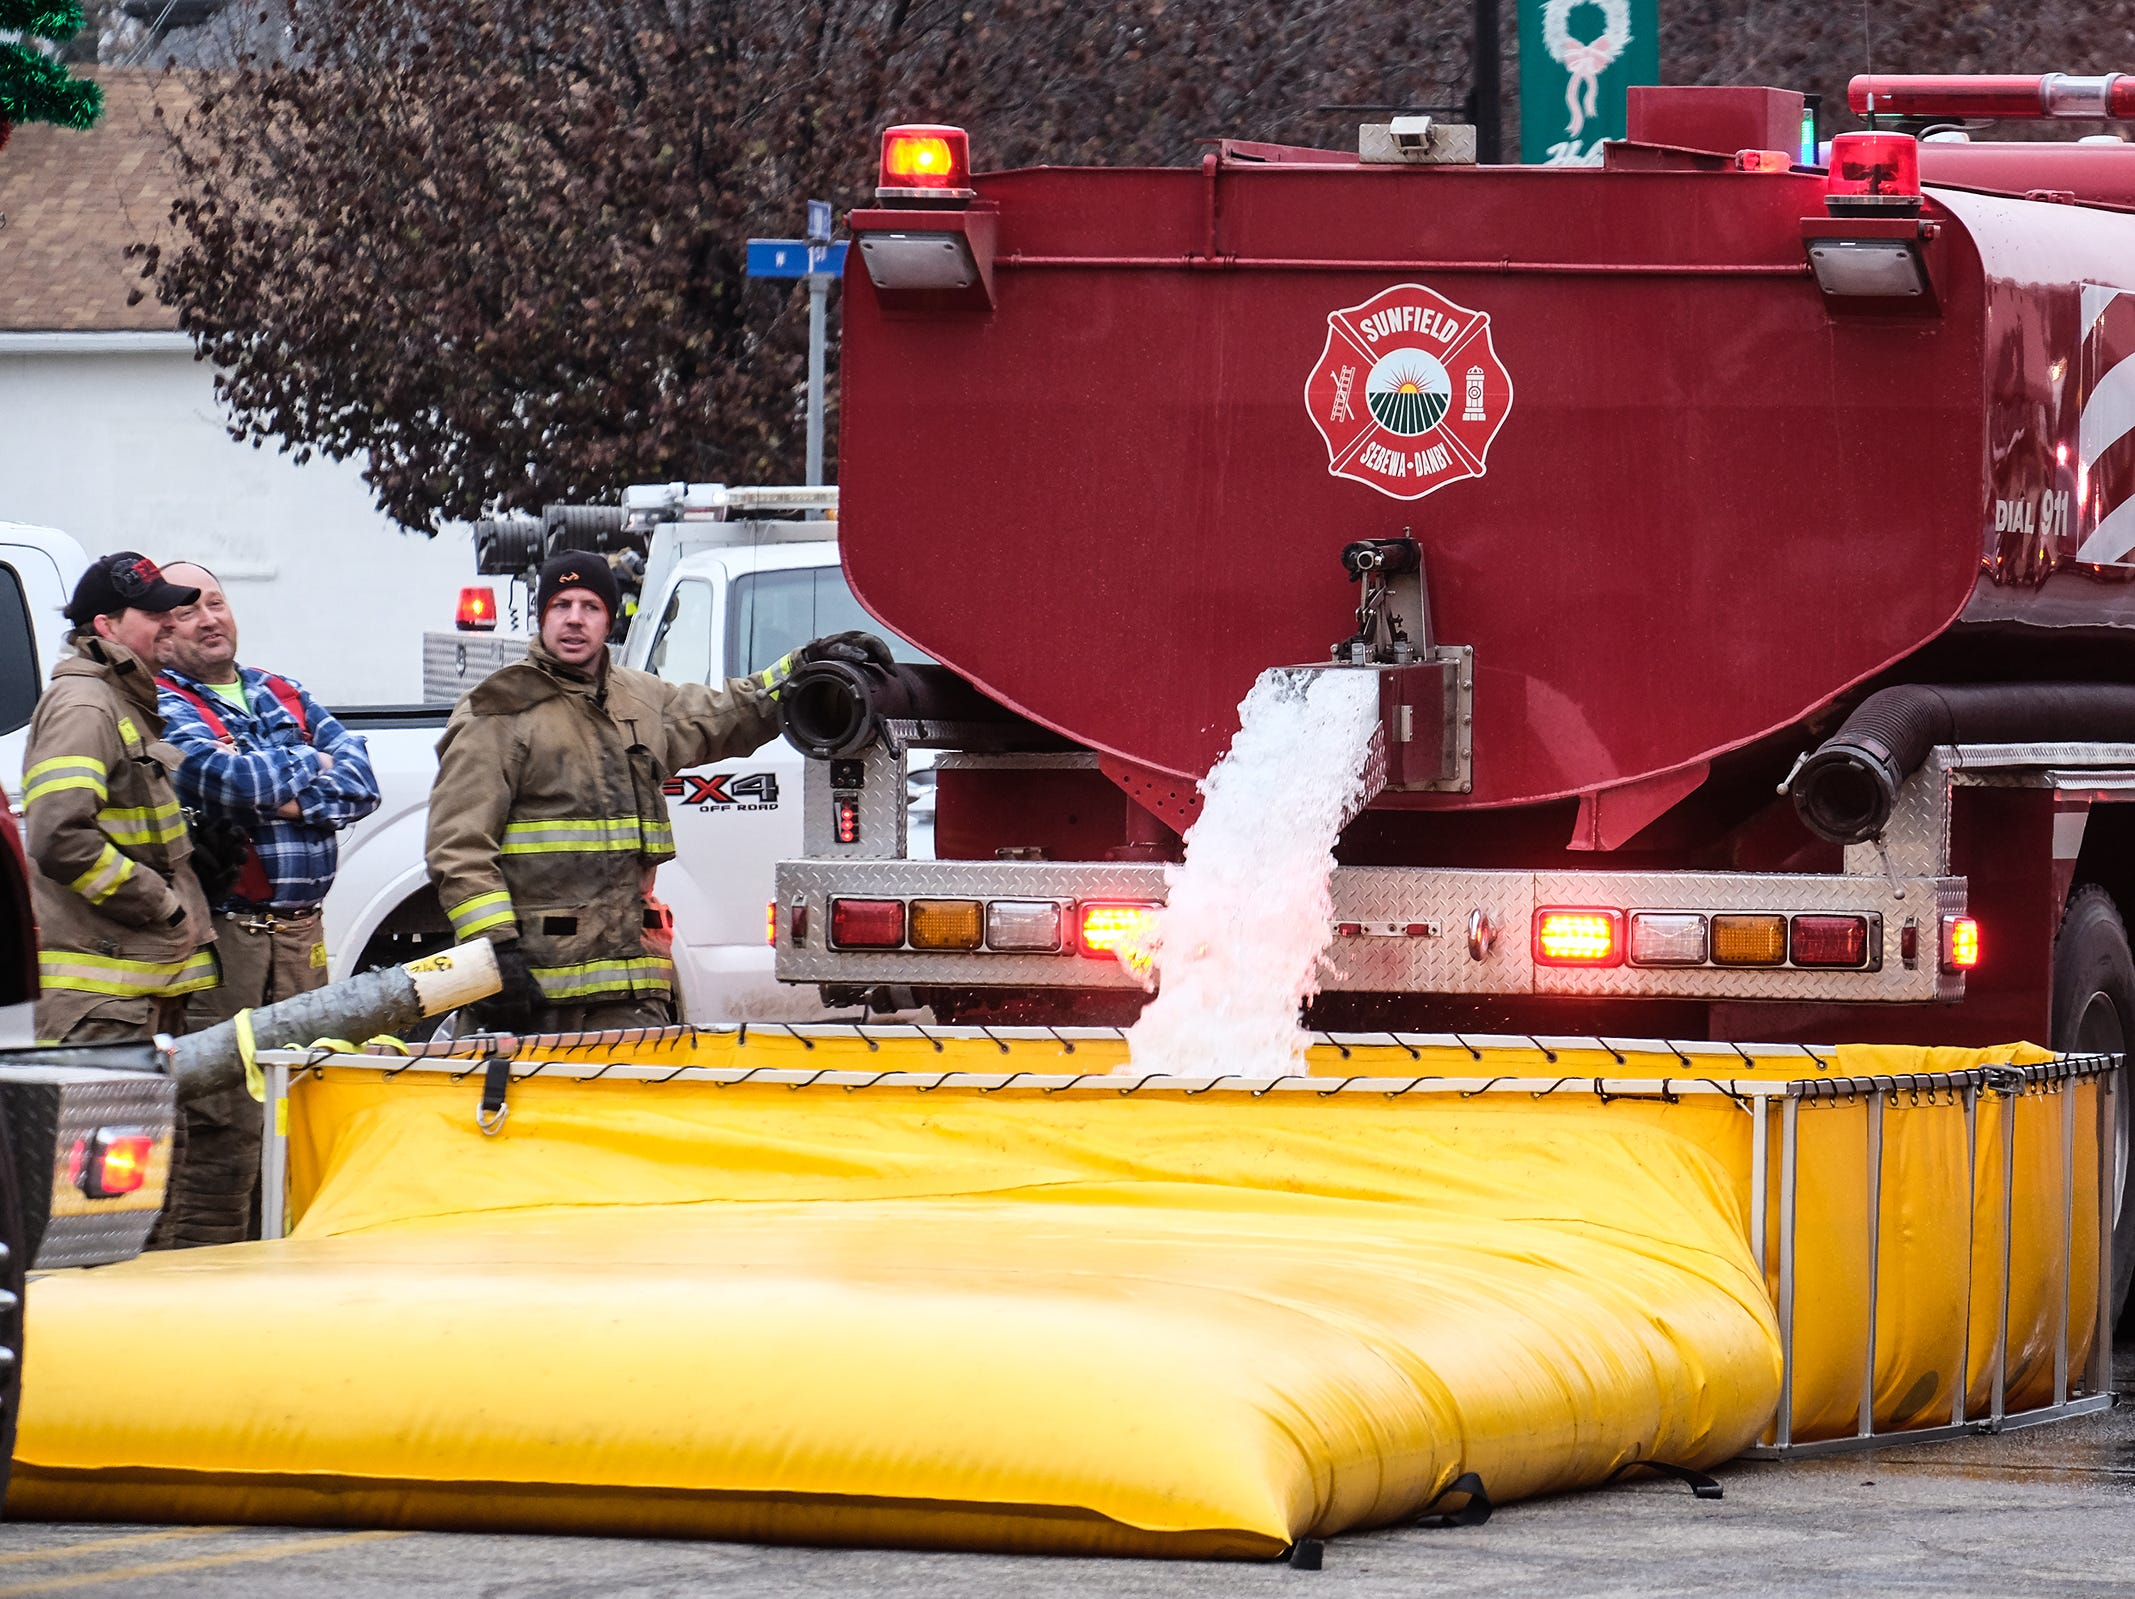 Tanker trucks fill water containers in Fowler to use against a fire that destoyed buildings in the downtown area Saturday, Dec. 15, 2018.